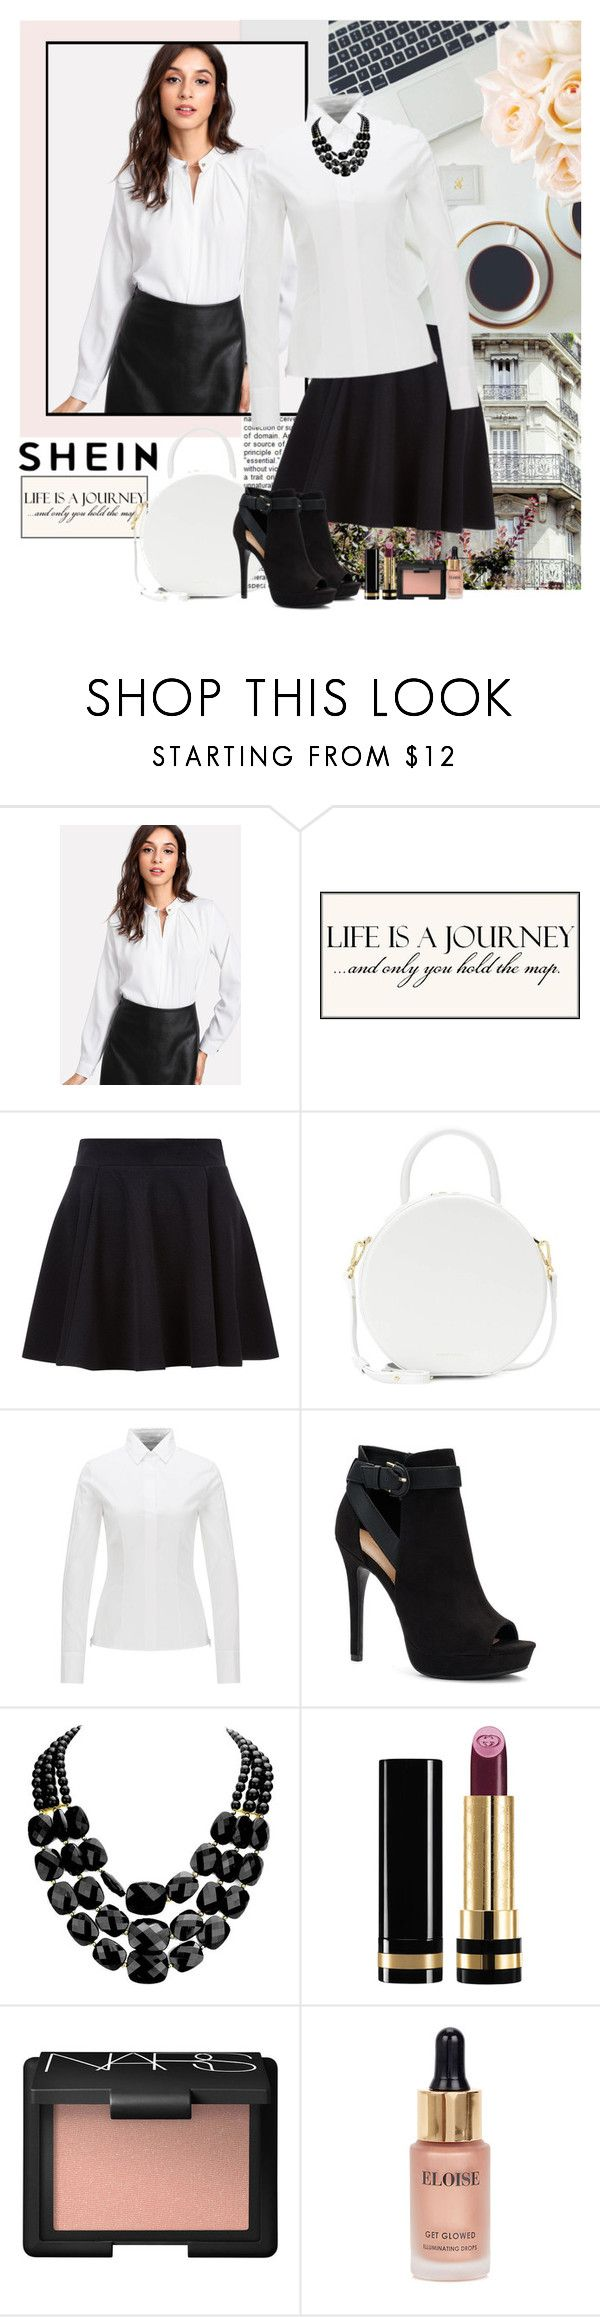 """SHEIN DENIM"" by polybaby ❤ liked on Polyvore featuring Mansur Gavriel, Apt. 9, Gucci and Eloise"